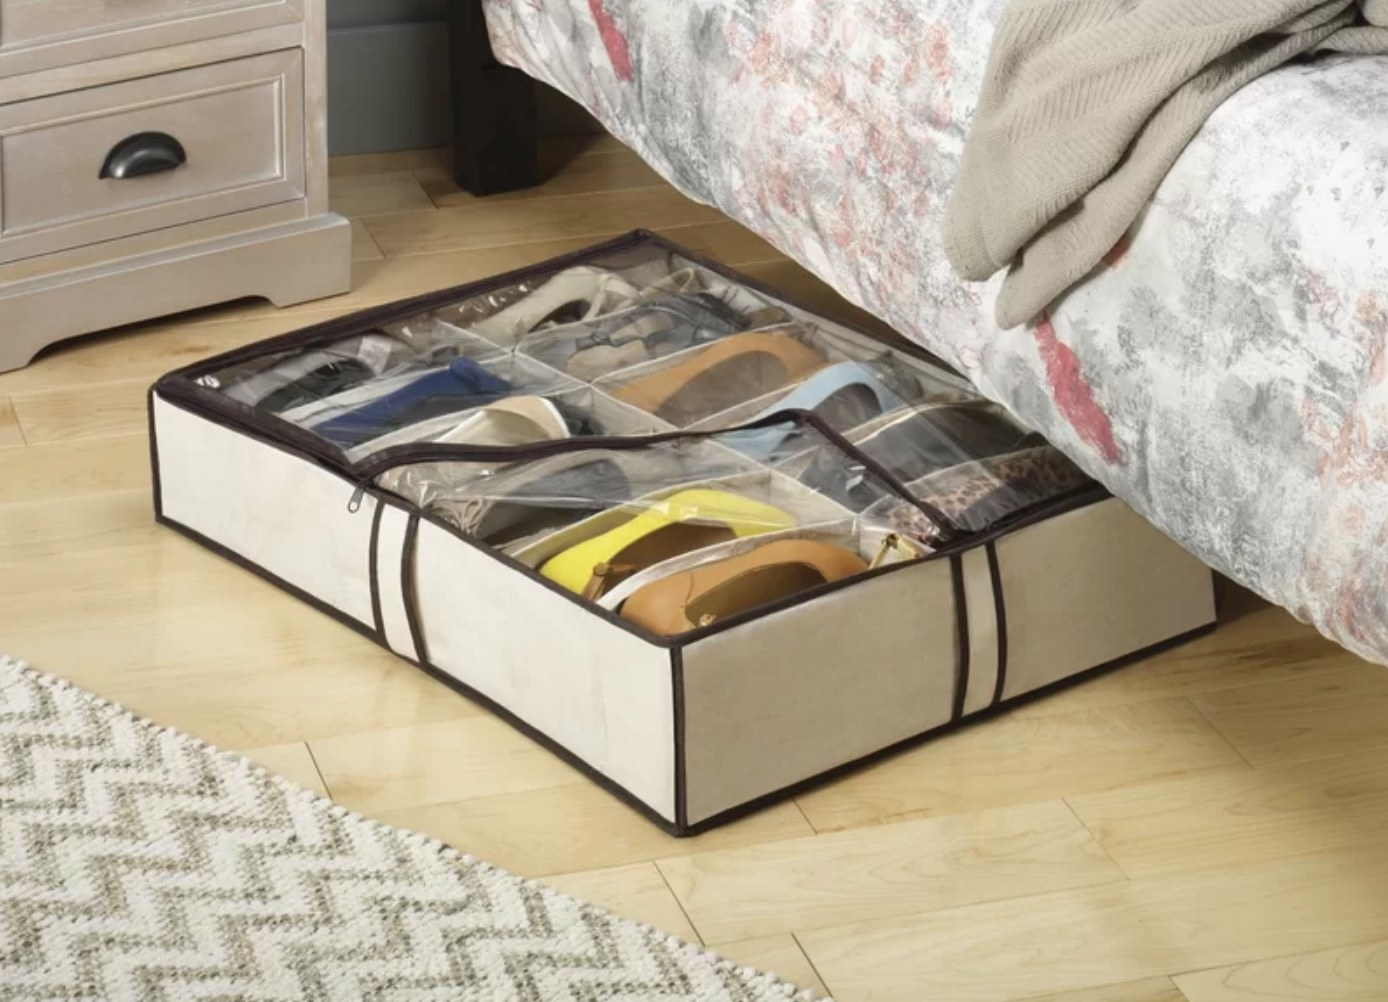 The fabric under bed shoe storage container